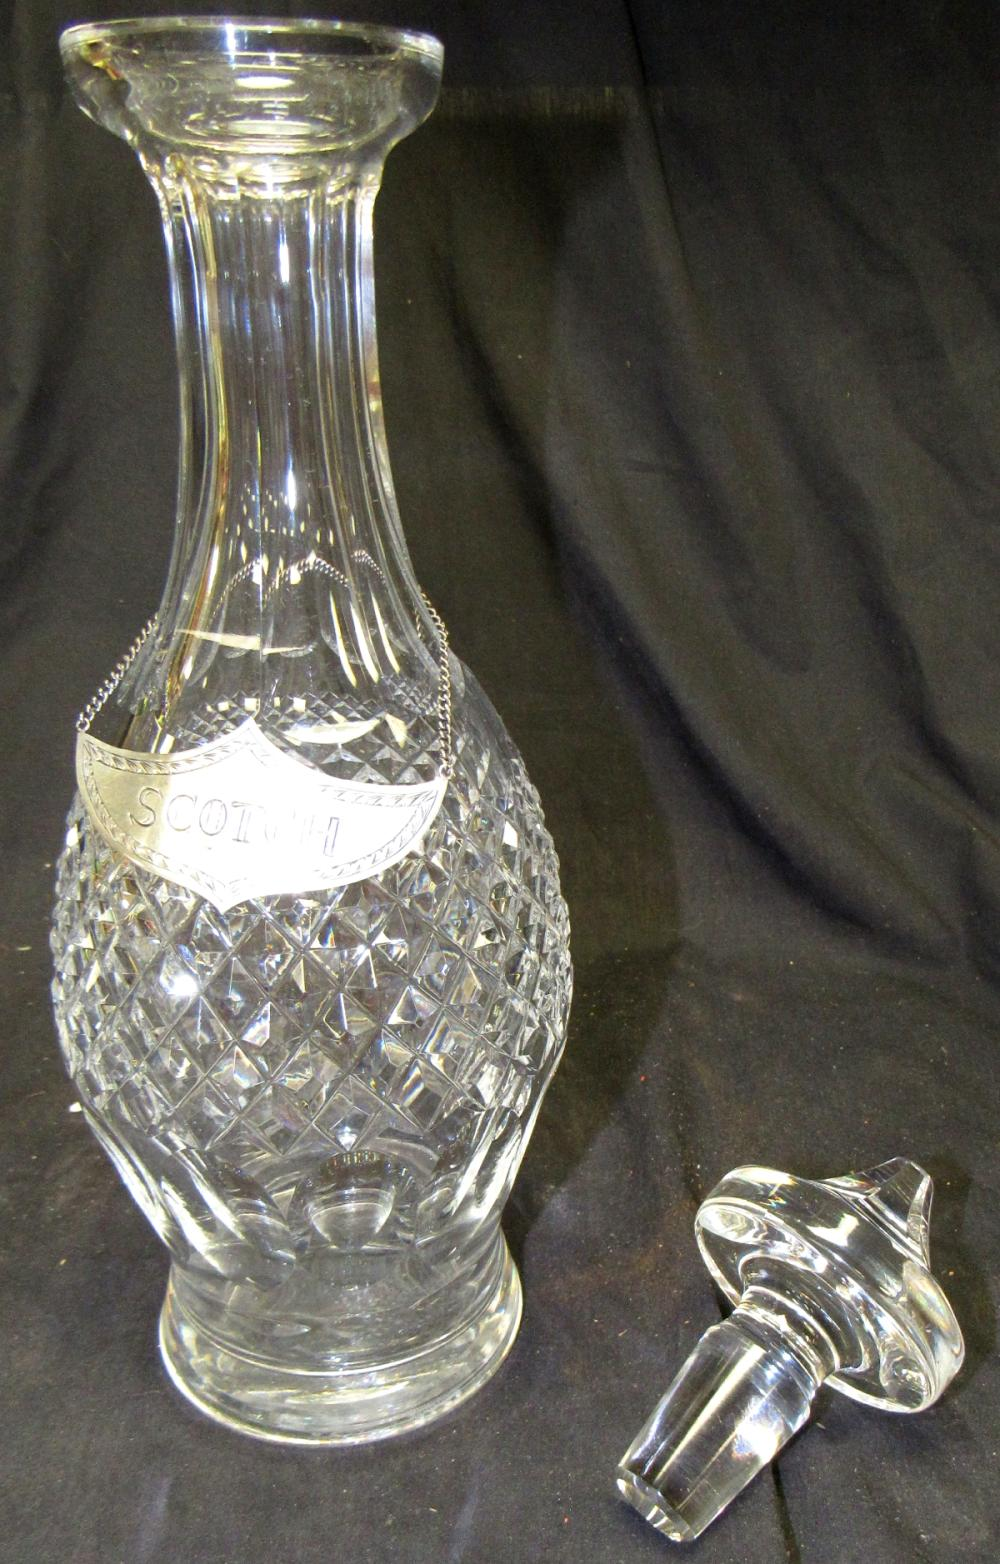 "Lot 133: Waterford Irish Crystal Colleen Decanter with Stopper with Sterling Scotch Liqueur Label 800 Silver, 13 1/2""H, EC"